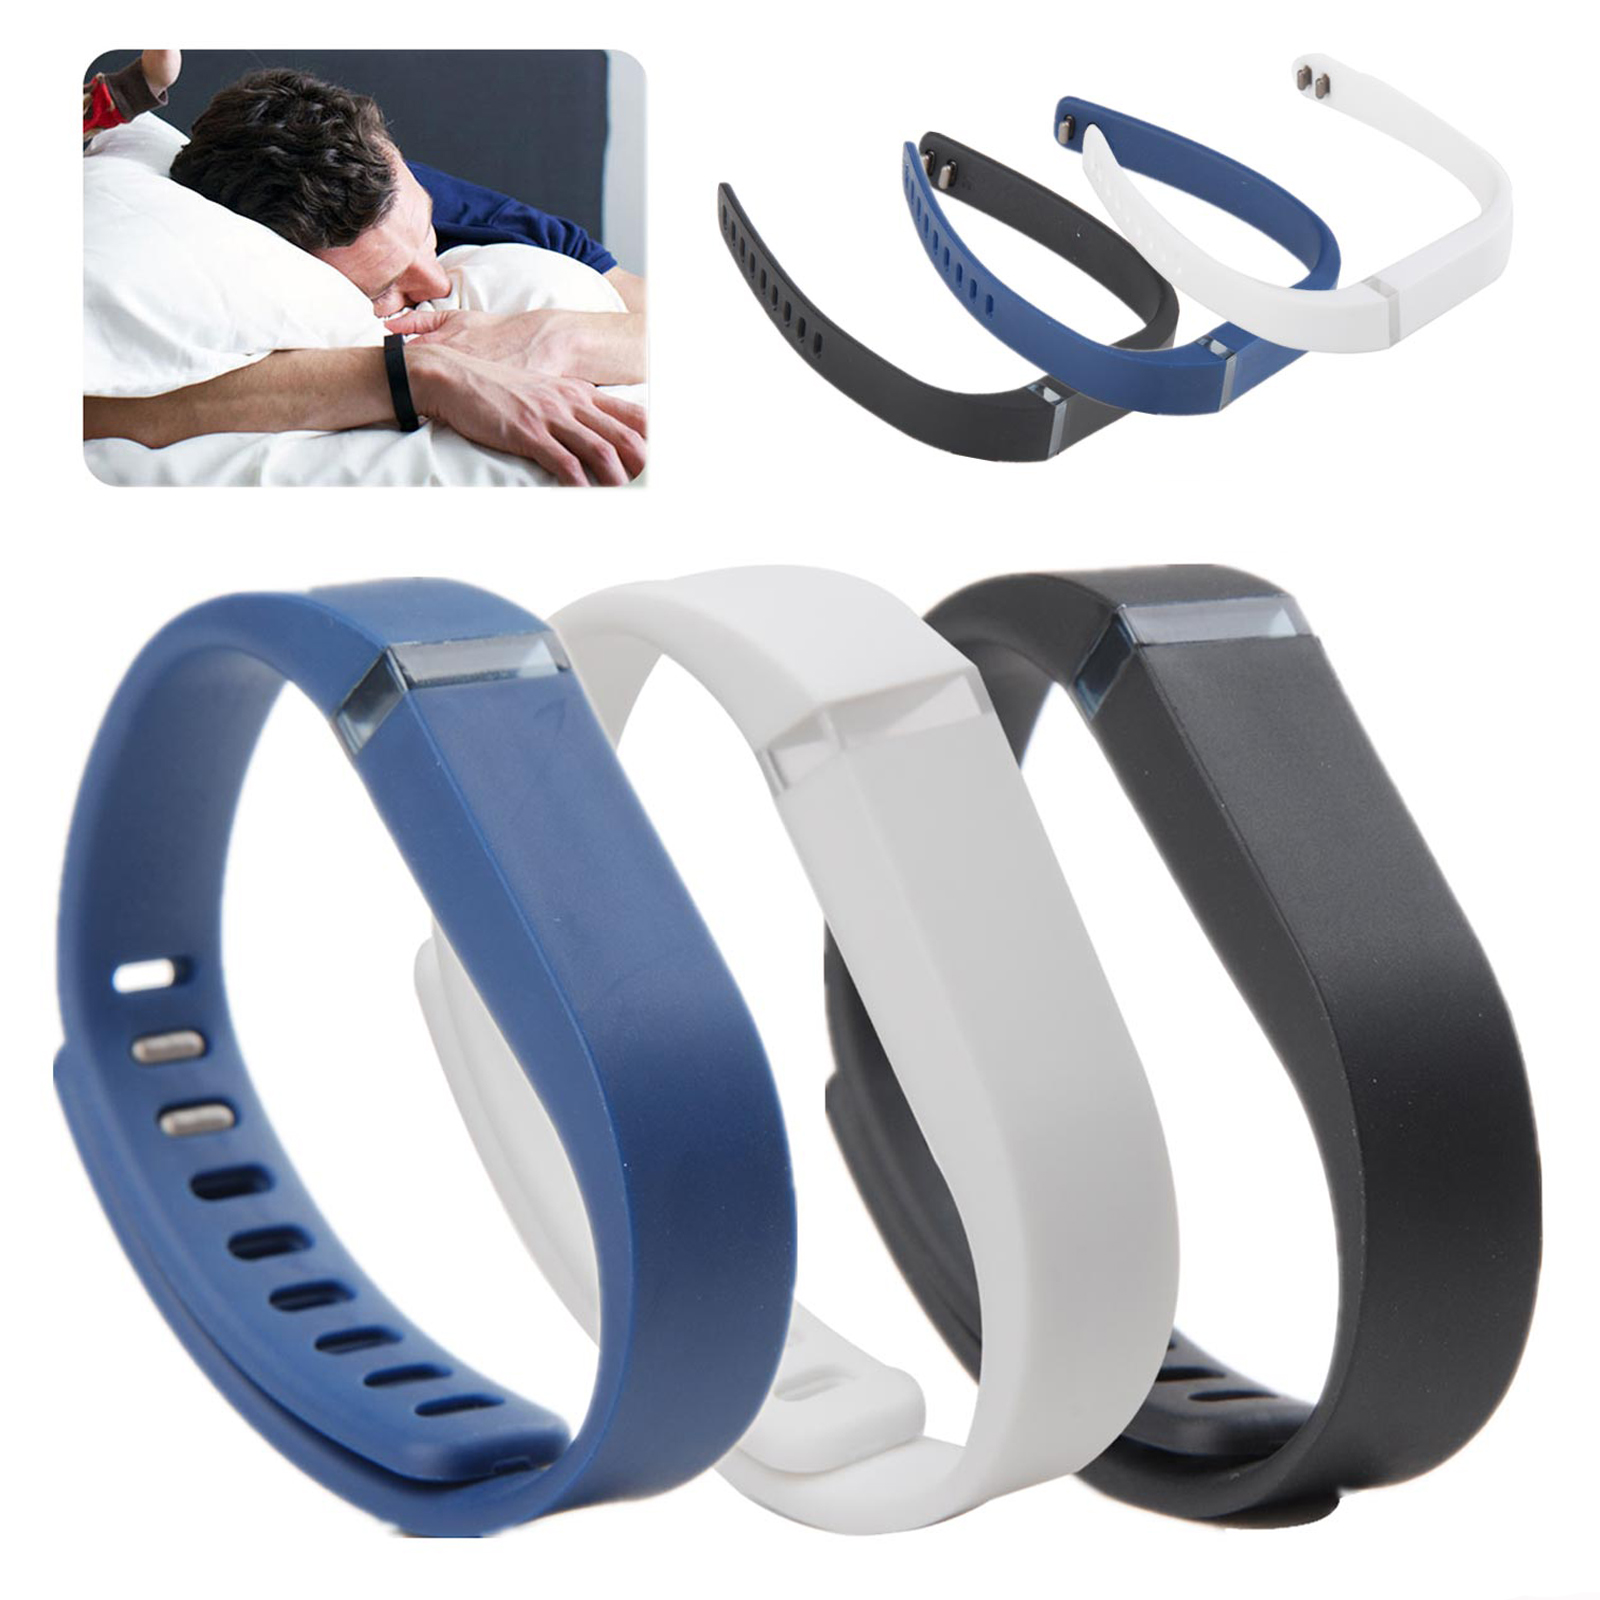 EEEKit 3 Pcs Replacement Wrist Band Clasp For Fitbit Flex Wireless Activity Sleep Wristband